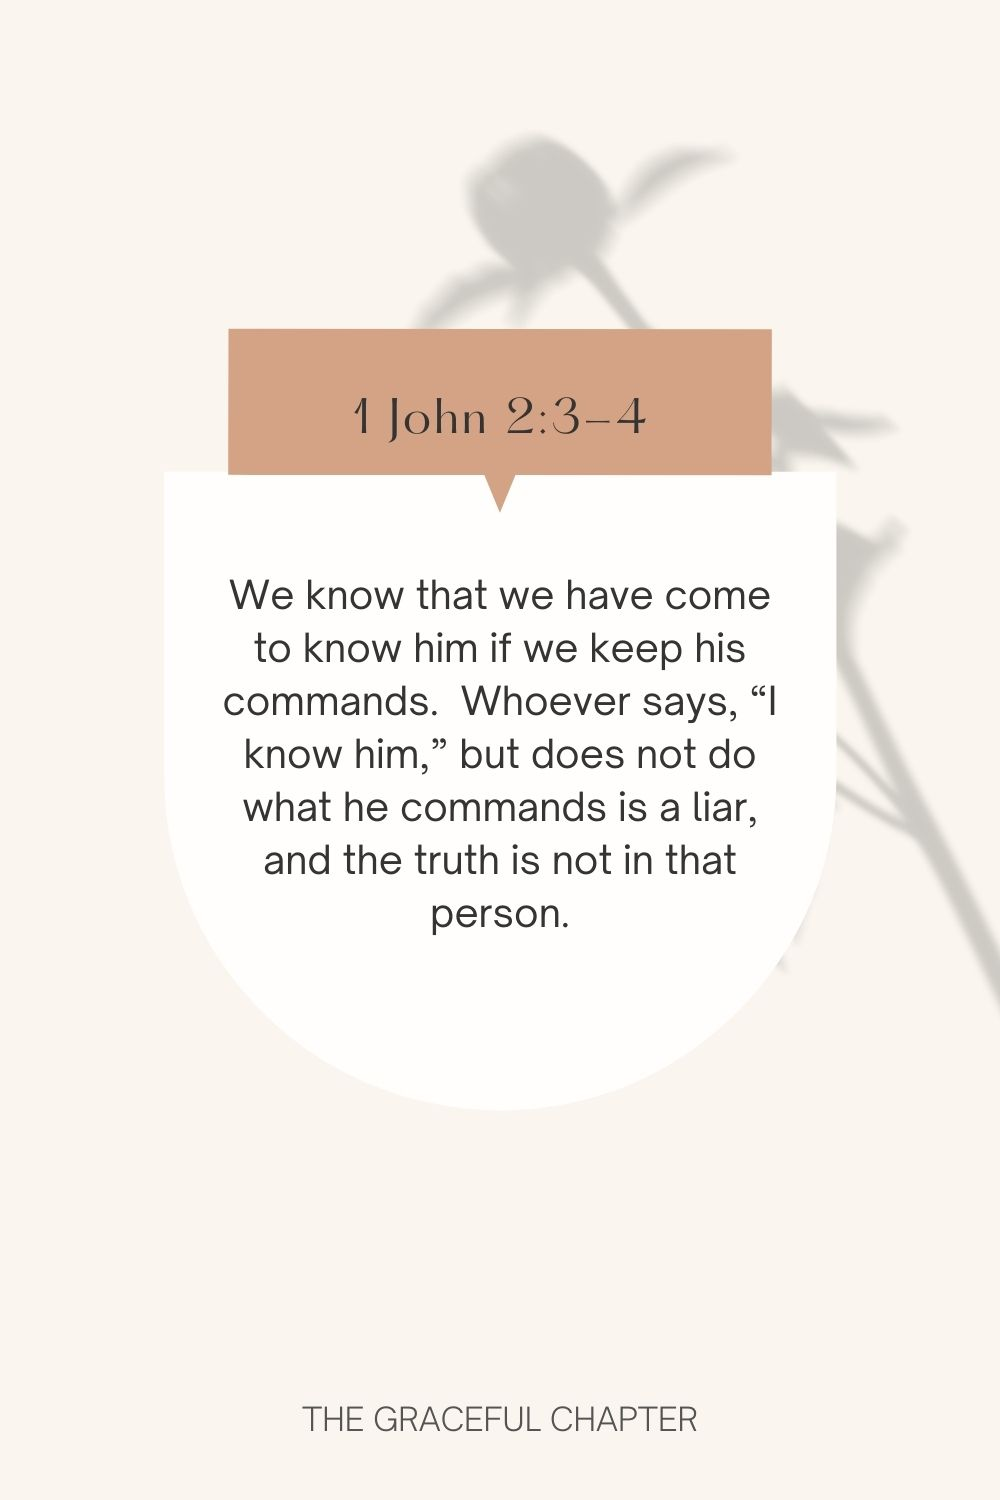 """We know that we have come to know him if we keep his commands.  Whoever says, """"I know him,"""" but does not do what he commands is a liar, and the truth is not in that person. 1 John 2:3-4"""